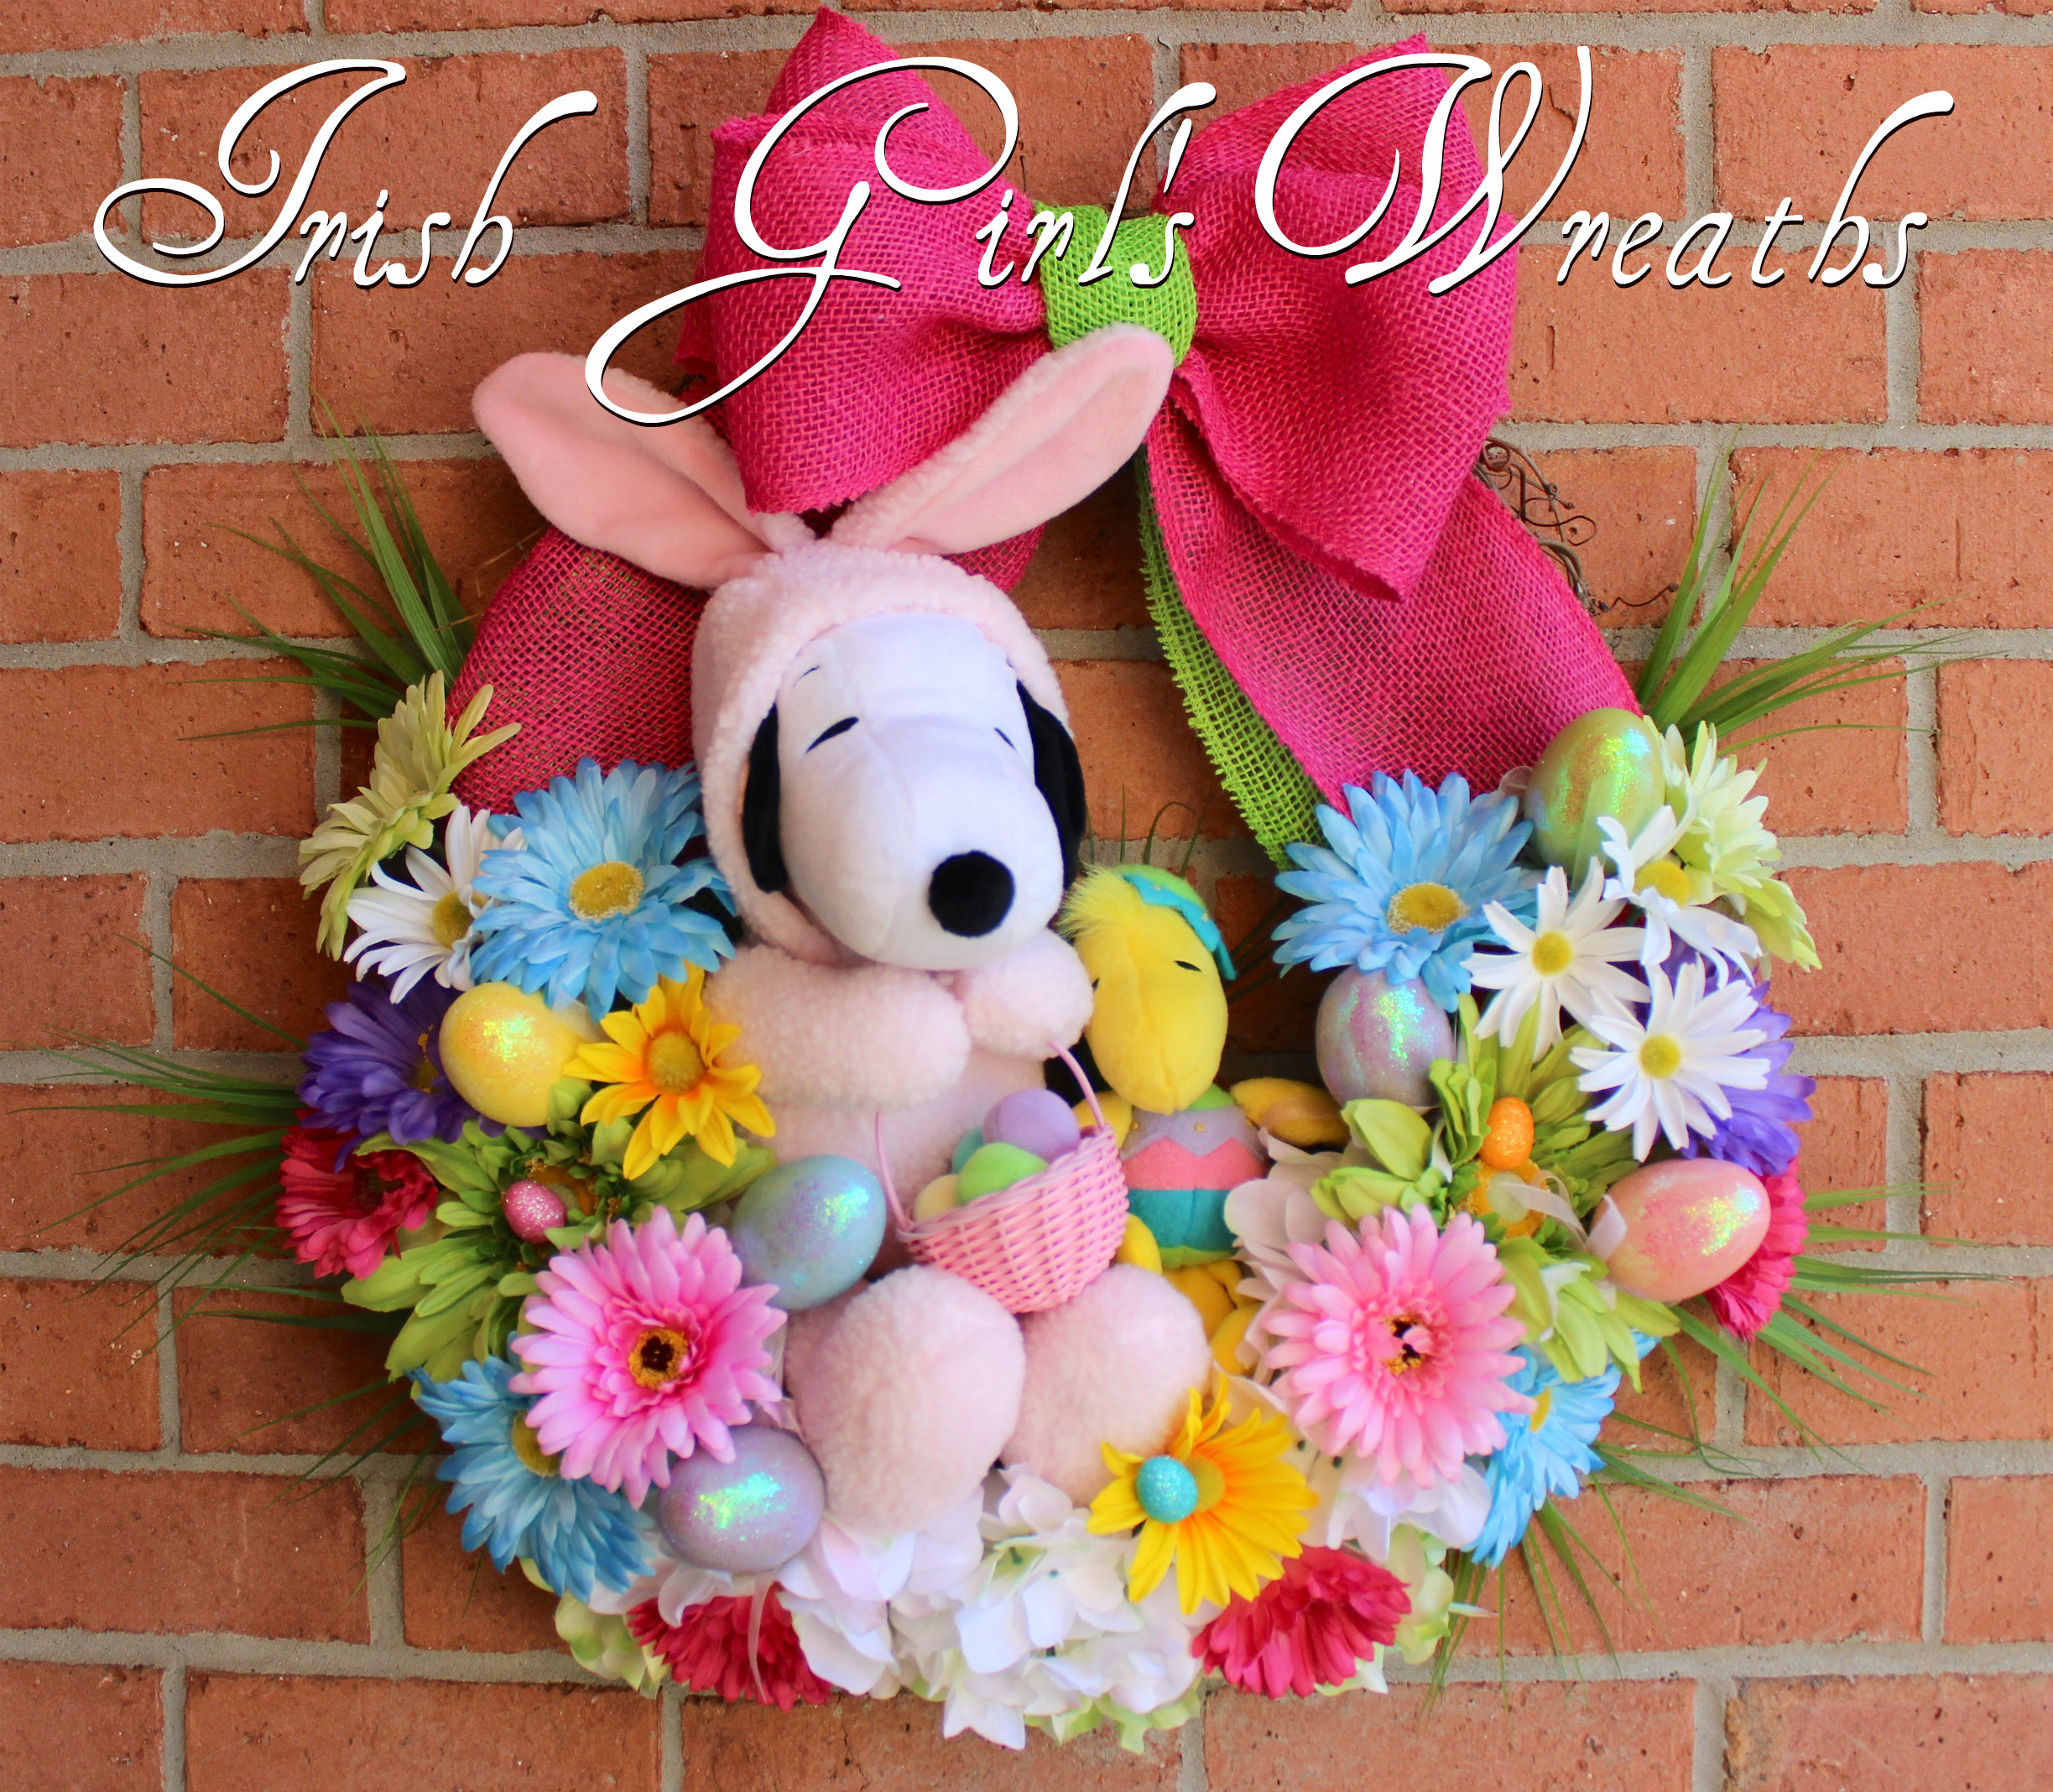 Peanuts Easter Beagle Wreath, Snoopy and Woodstock Easter Wreath, Pink Bunny Snoopy